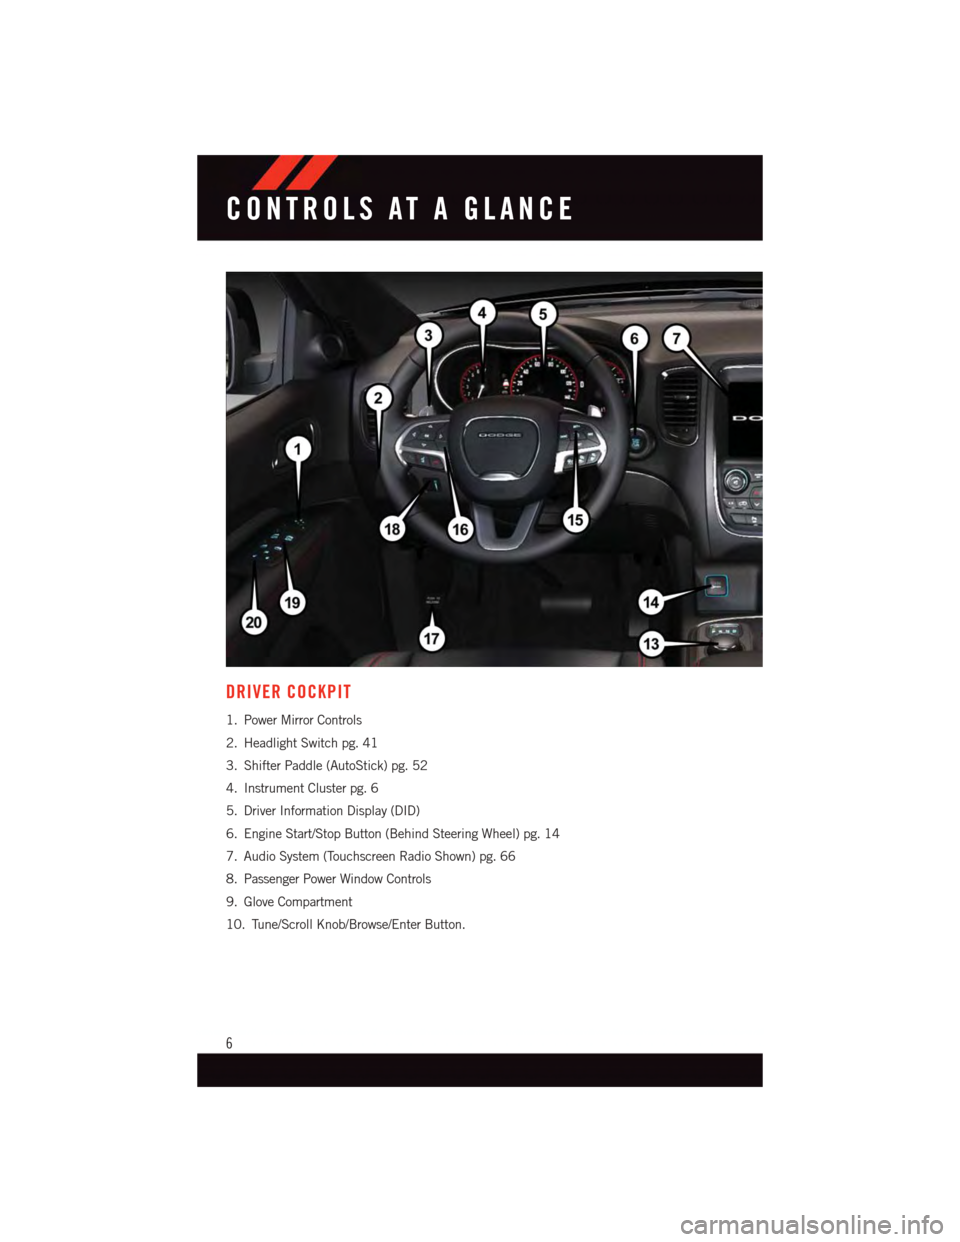 DODGE DURANGO 2015 3.G User Guide DRIVER COCKPIT 1. Power Mirror Controls 2. Headlight Switch pg. 41 3. Shifter Paddle (AutoStick) pg. 52 4. Instrument Cluster pg. 6 5. Driver Information Display (DID) 6. Engine Start/Stop Button (Beh